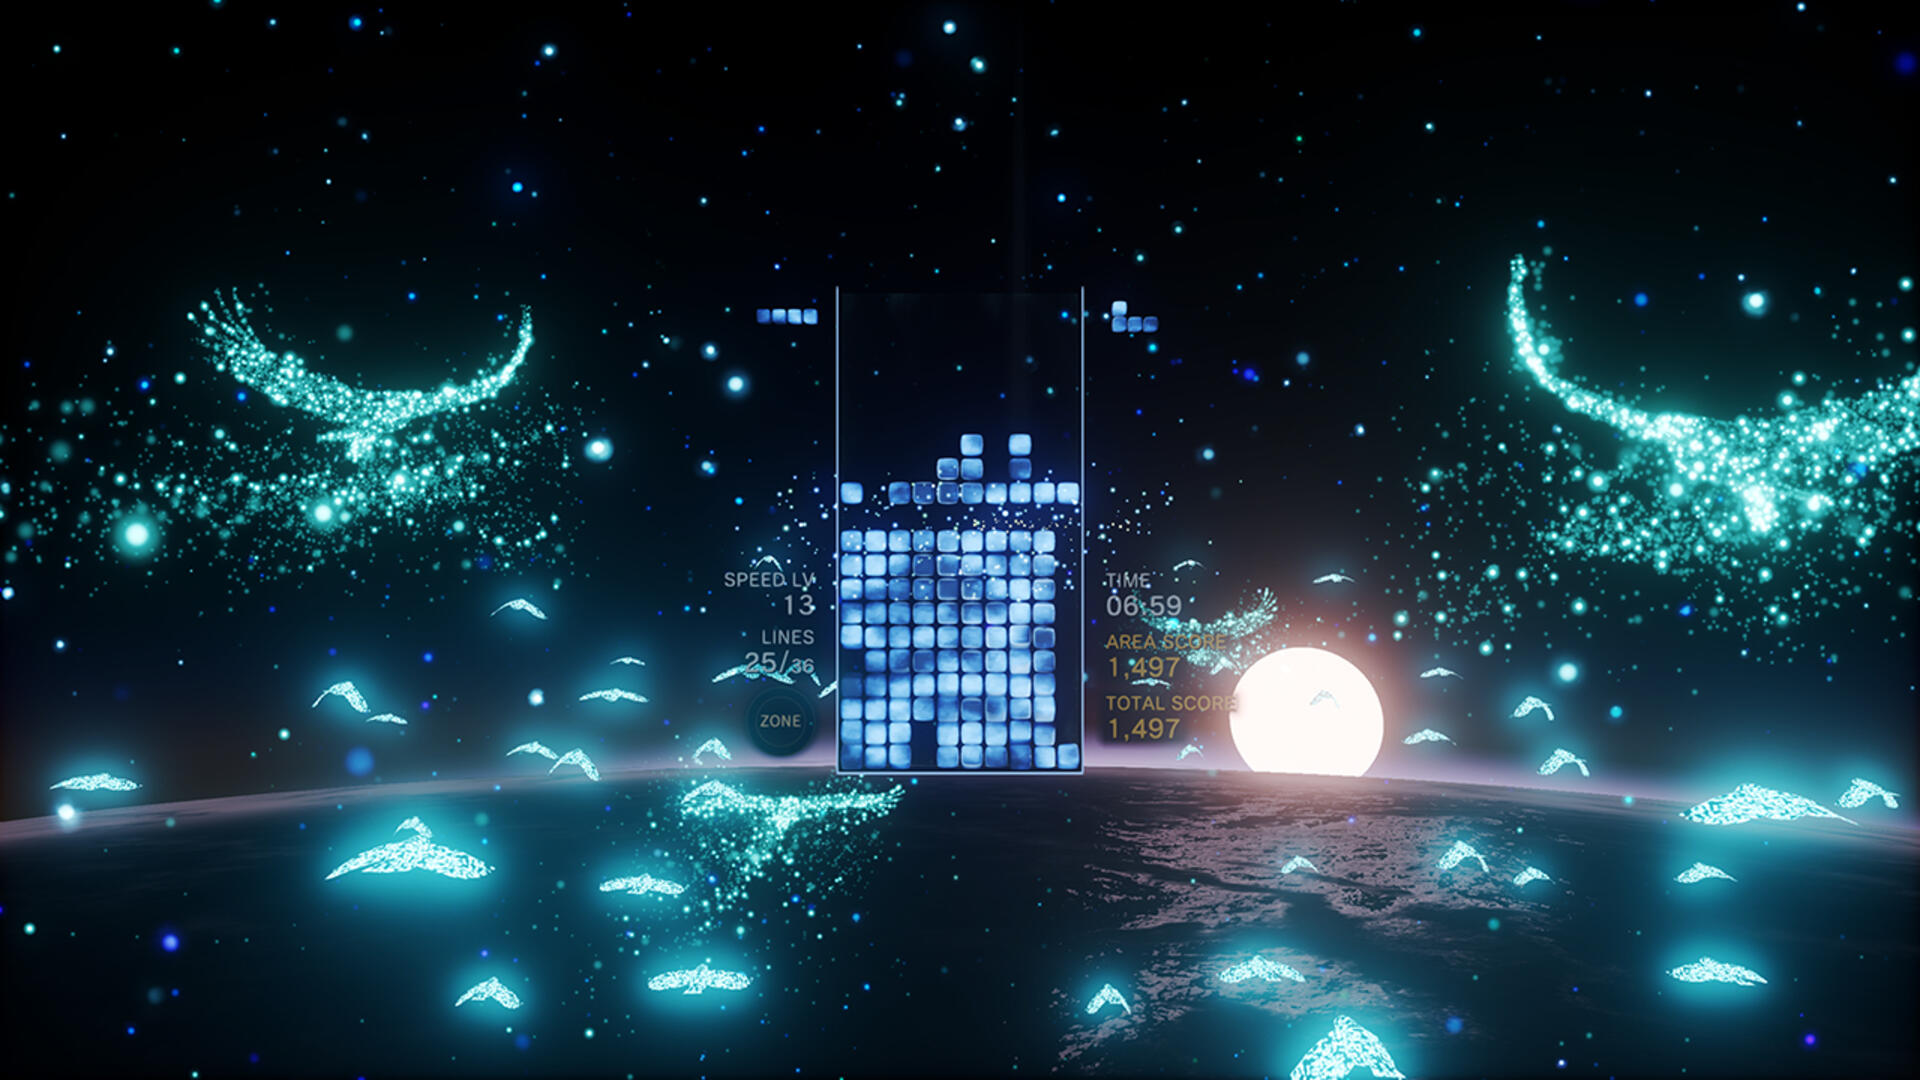 Epic Exclusive Tetris Effect VR Uses SteamVR, But Doesn't Necessarily Require It